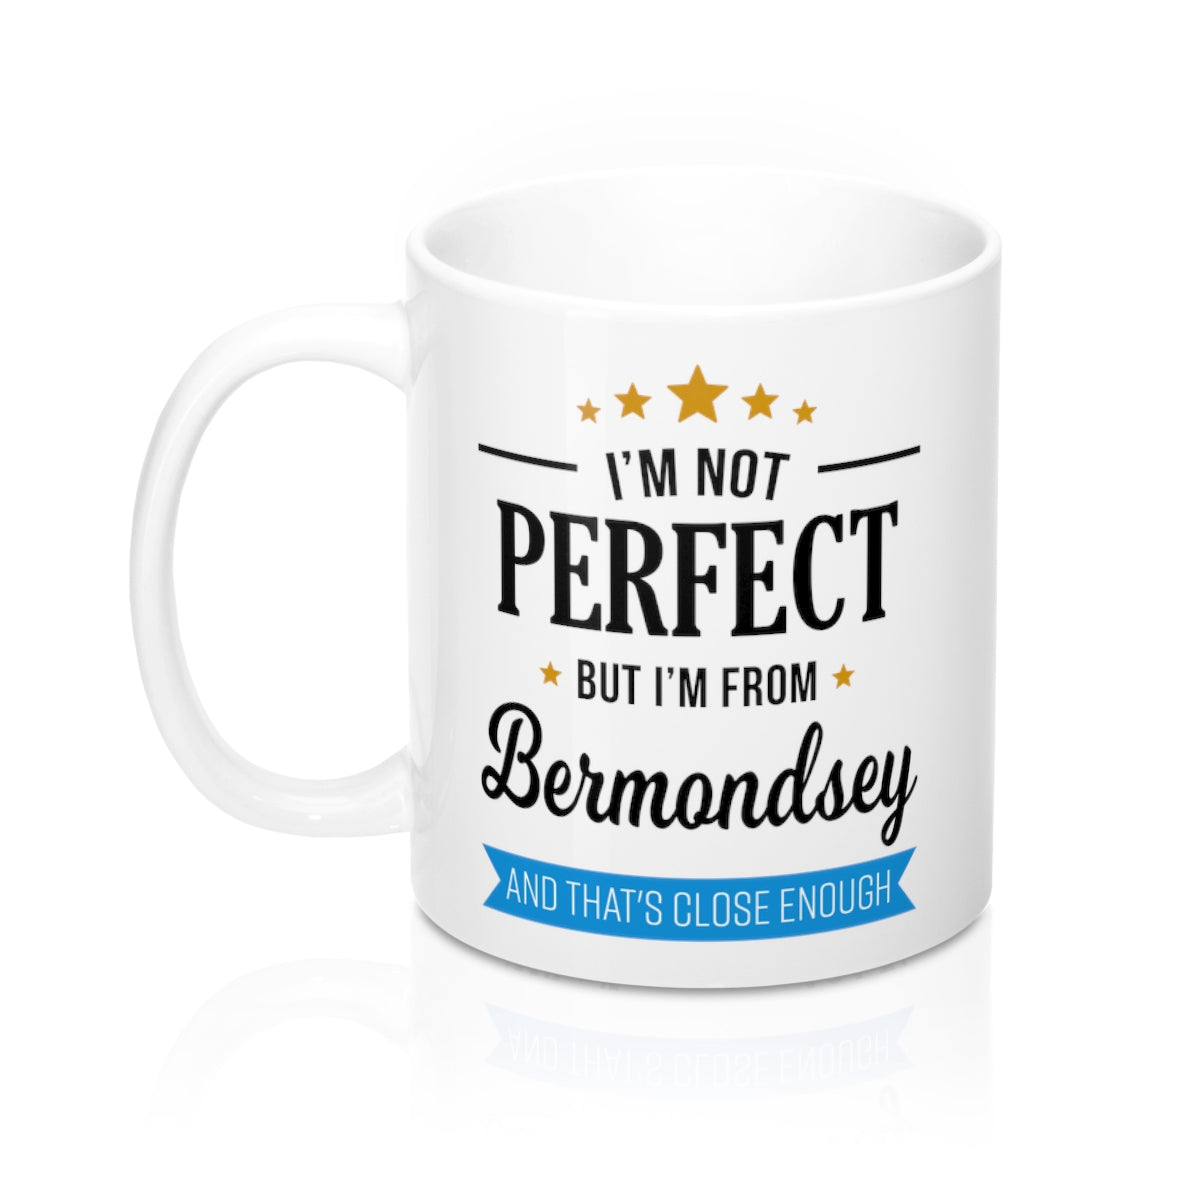 I'm Not Perfect But I'm From Bermondsey Mug